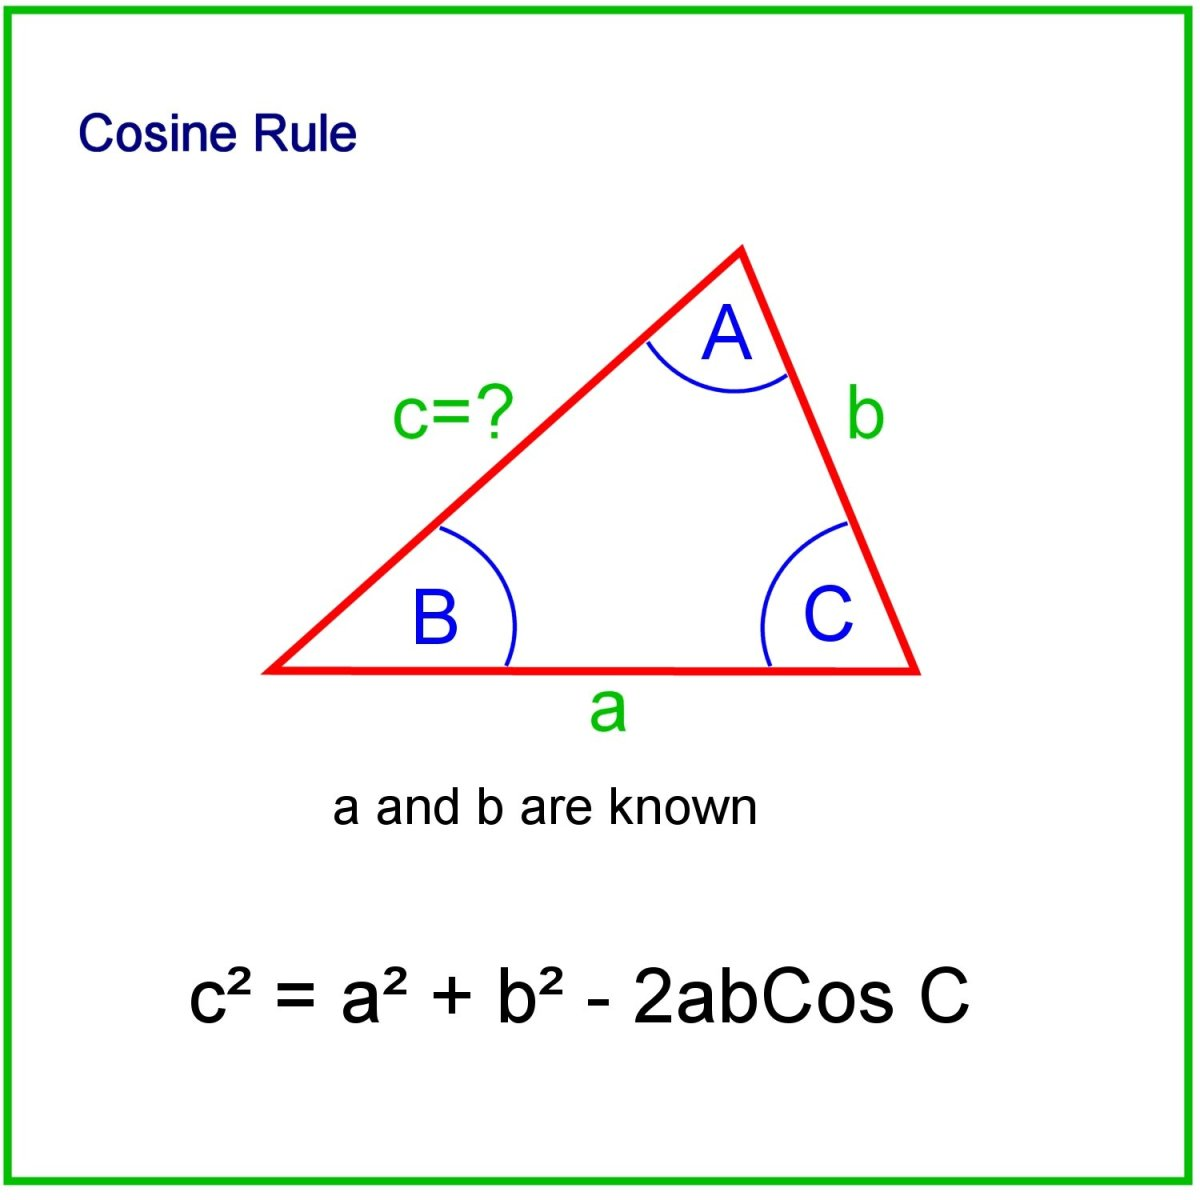 The cosine rule.